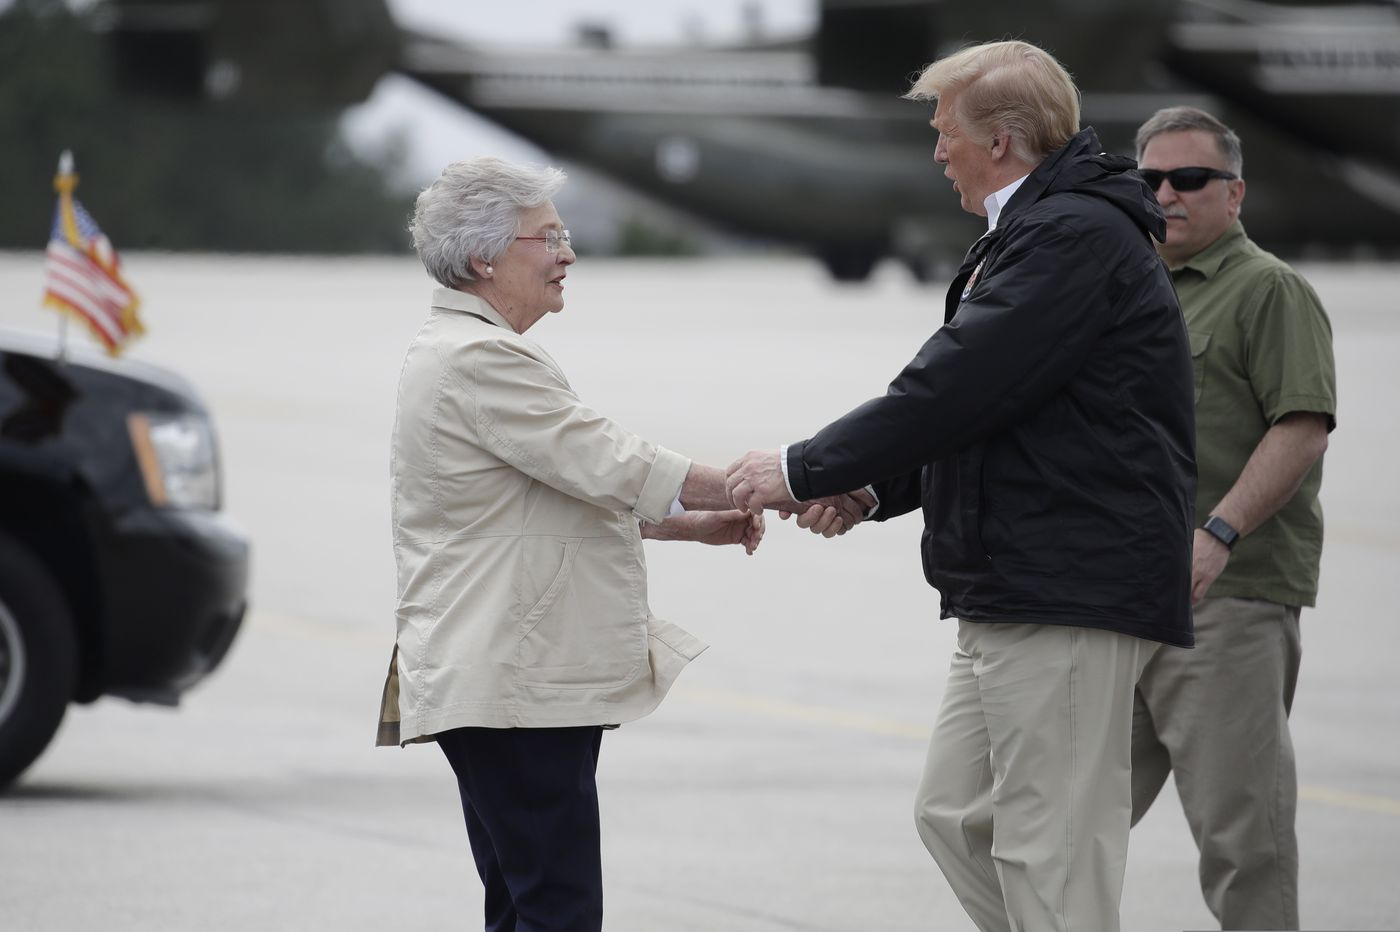 'He signed his Bible!' Trump gets hero's welcome in tornado-ravaged Alabama